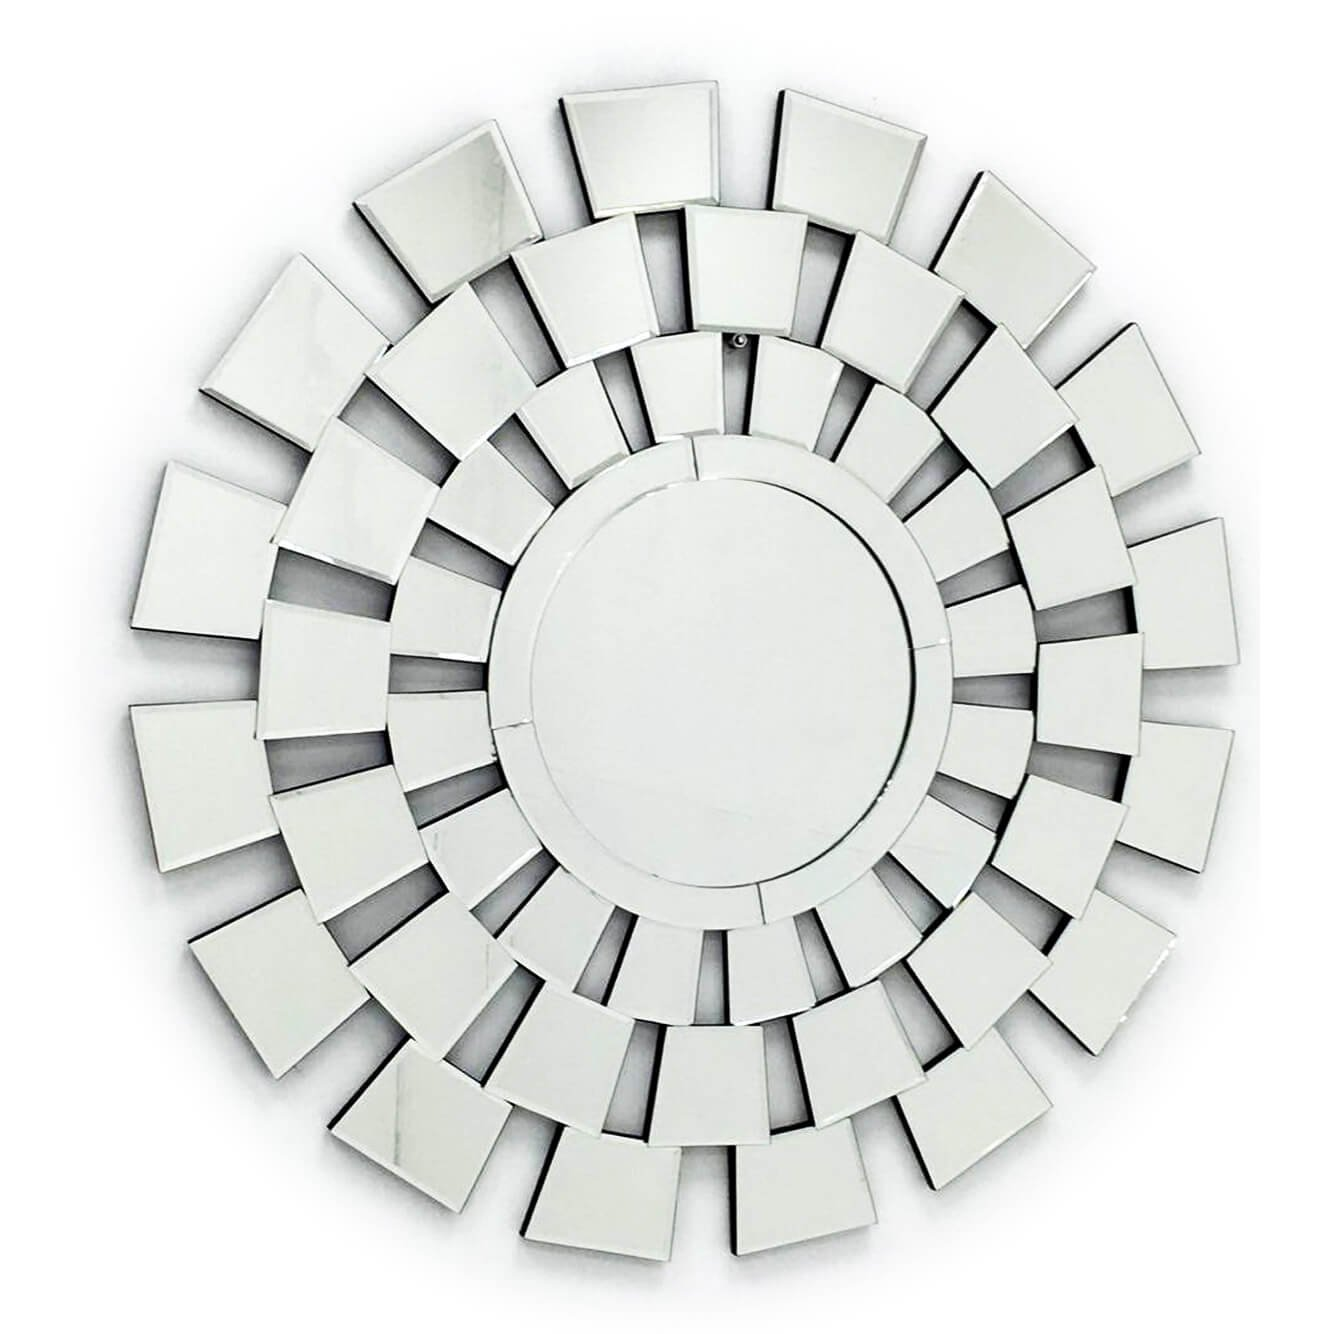 Fab Glass and Mirror FAB-WSTC016 Decorative Sunburst, Bathroom Wall